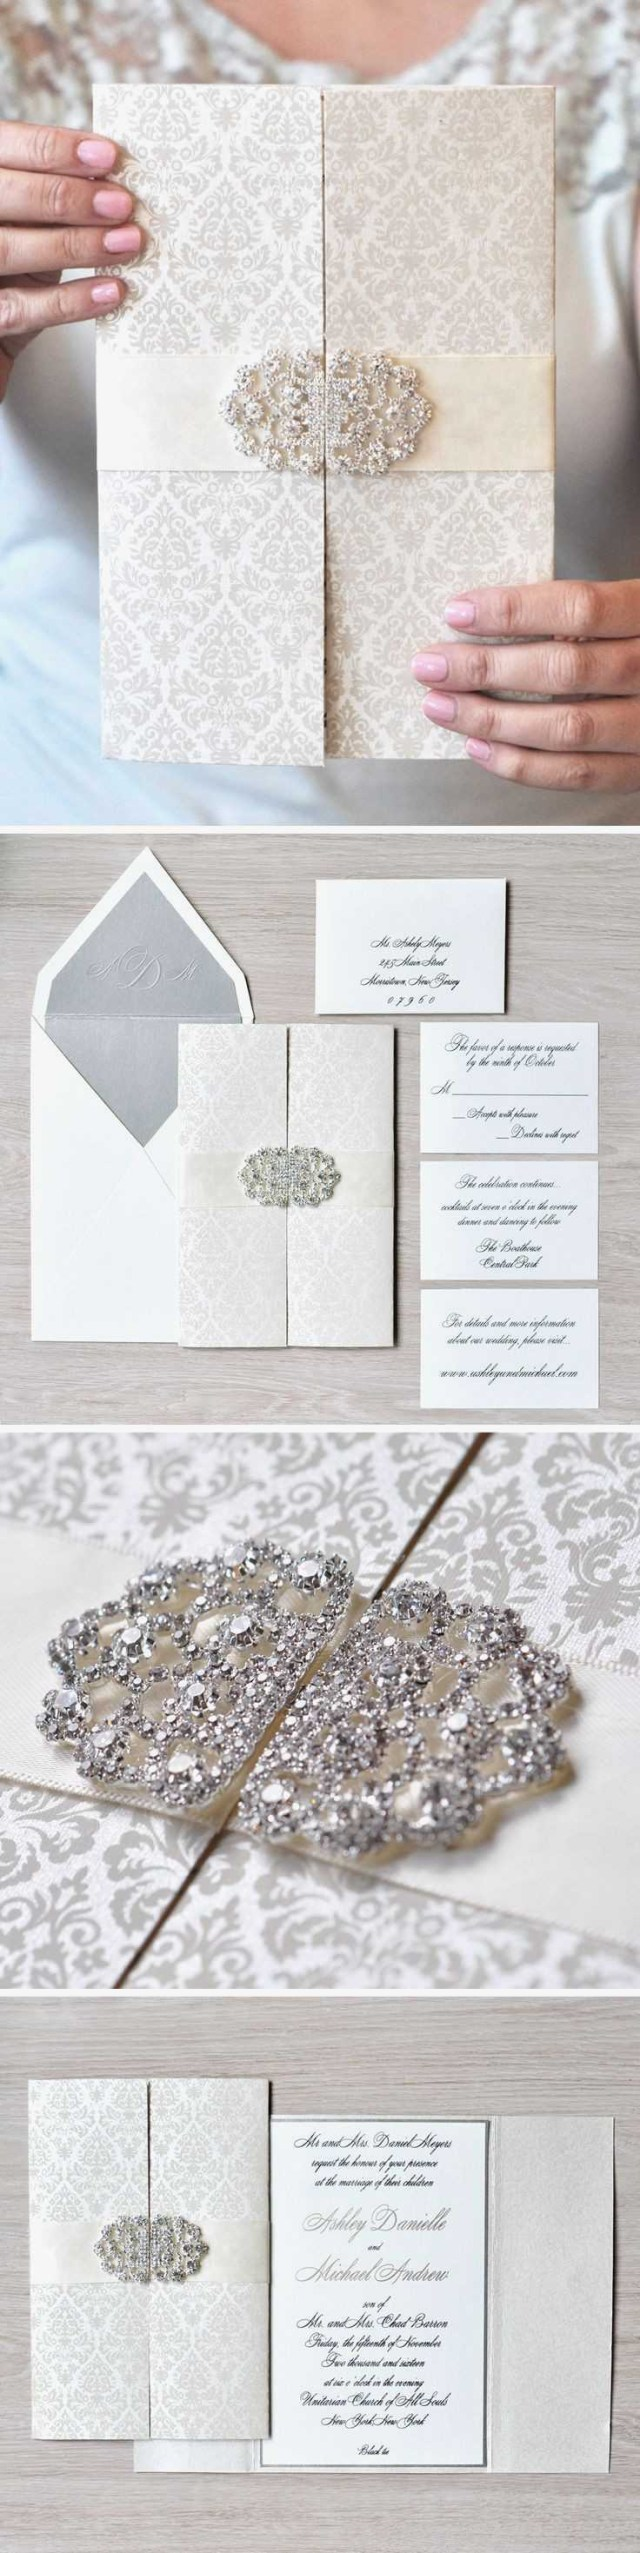 Wedding Invitation Keepsake Wedding Invitation Keepsake Ornament Rescuemetugz